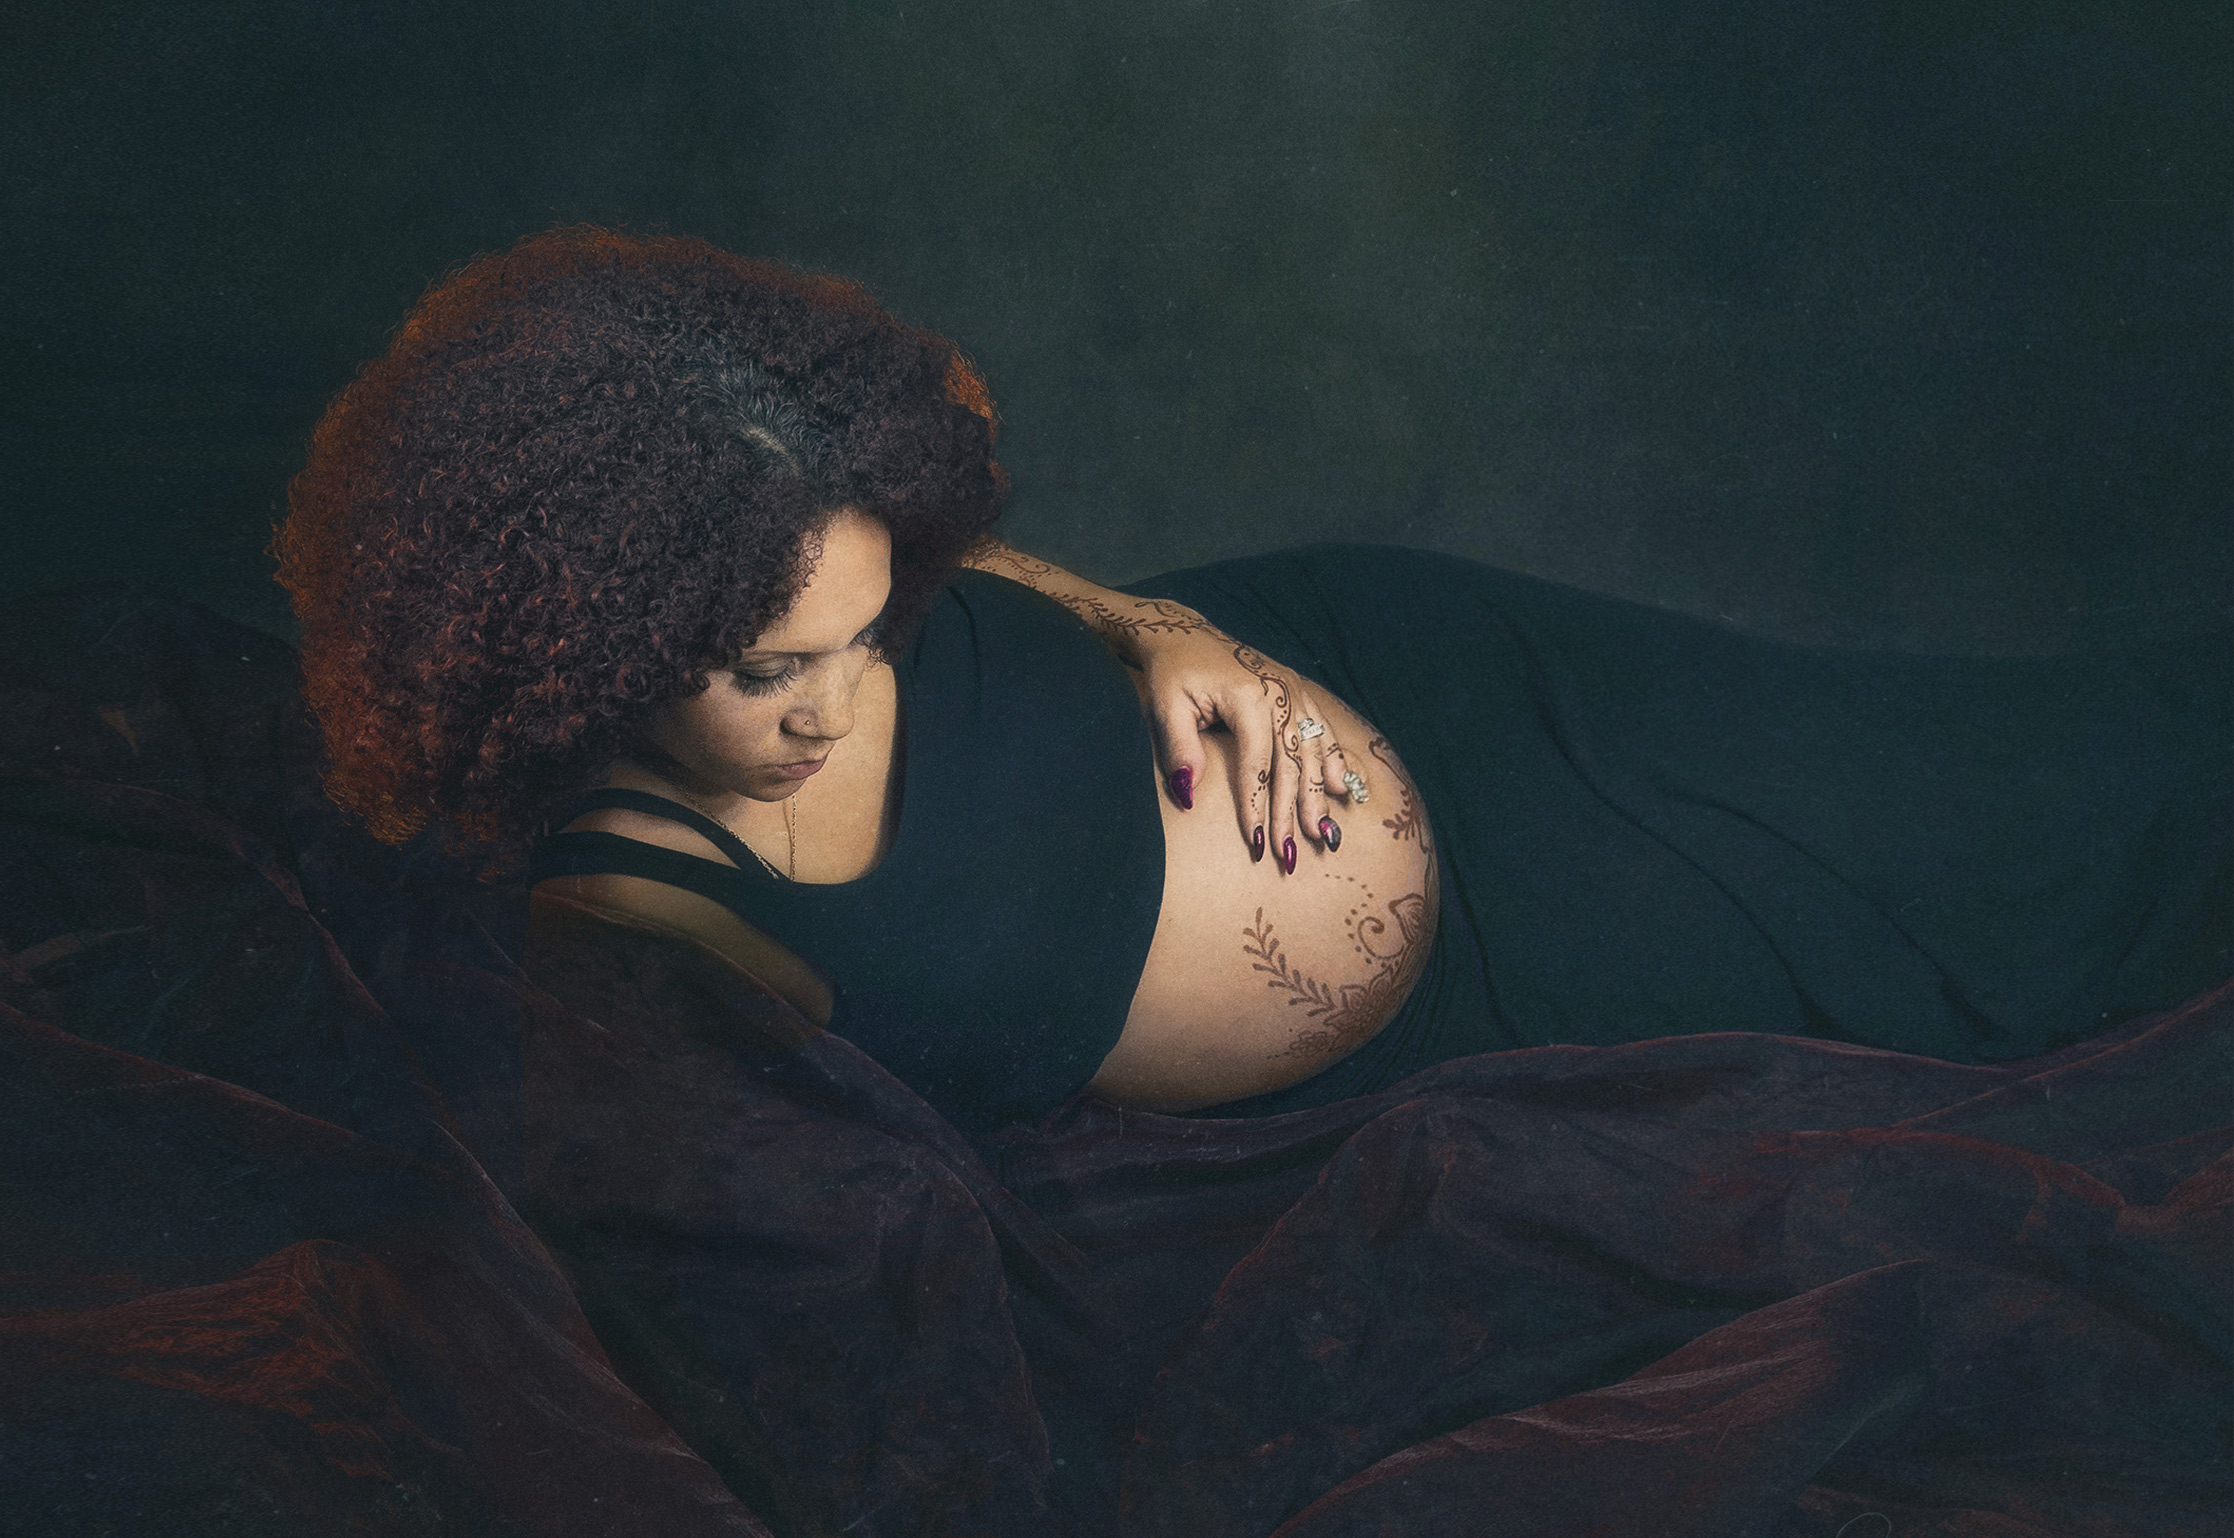 It's photos like this one make me wonder whether I should go back to taking pregnancy photos against dark background.